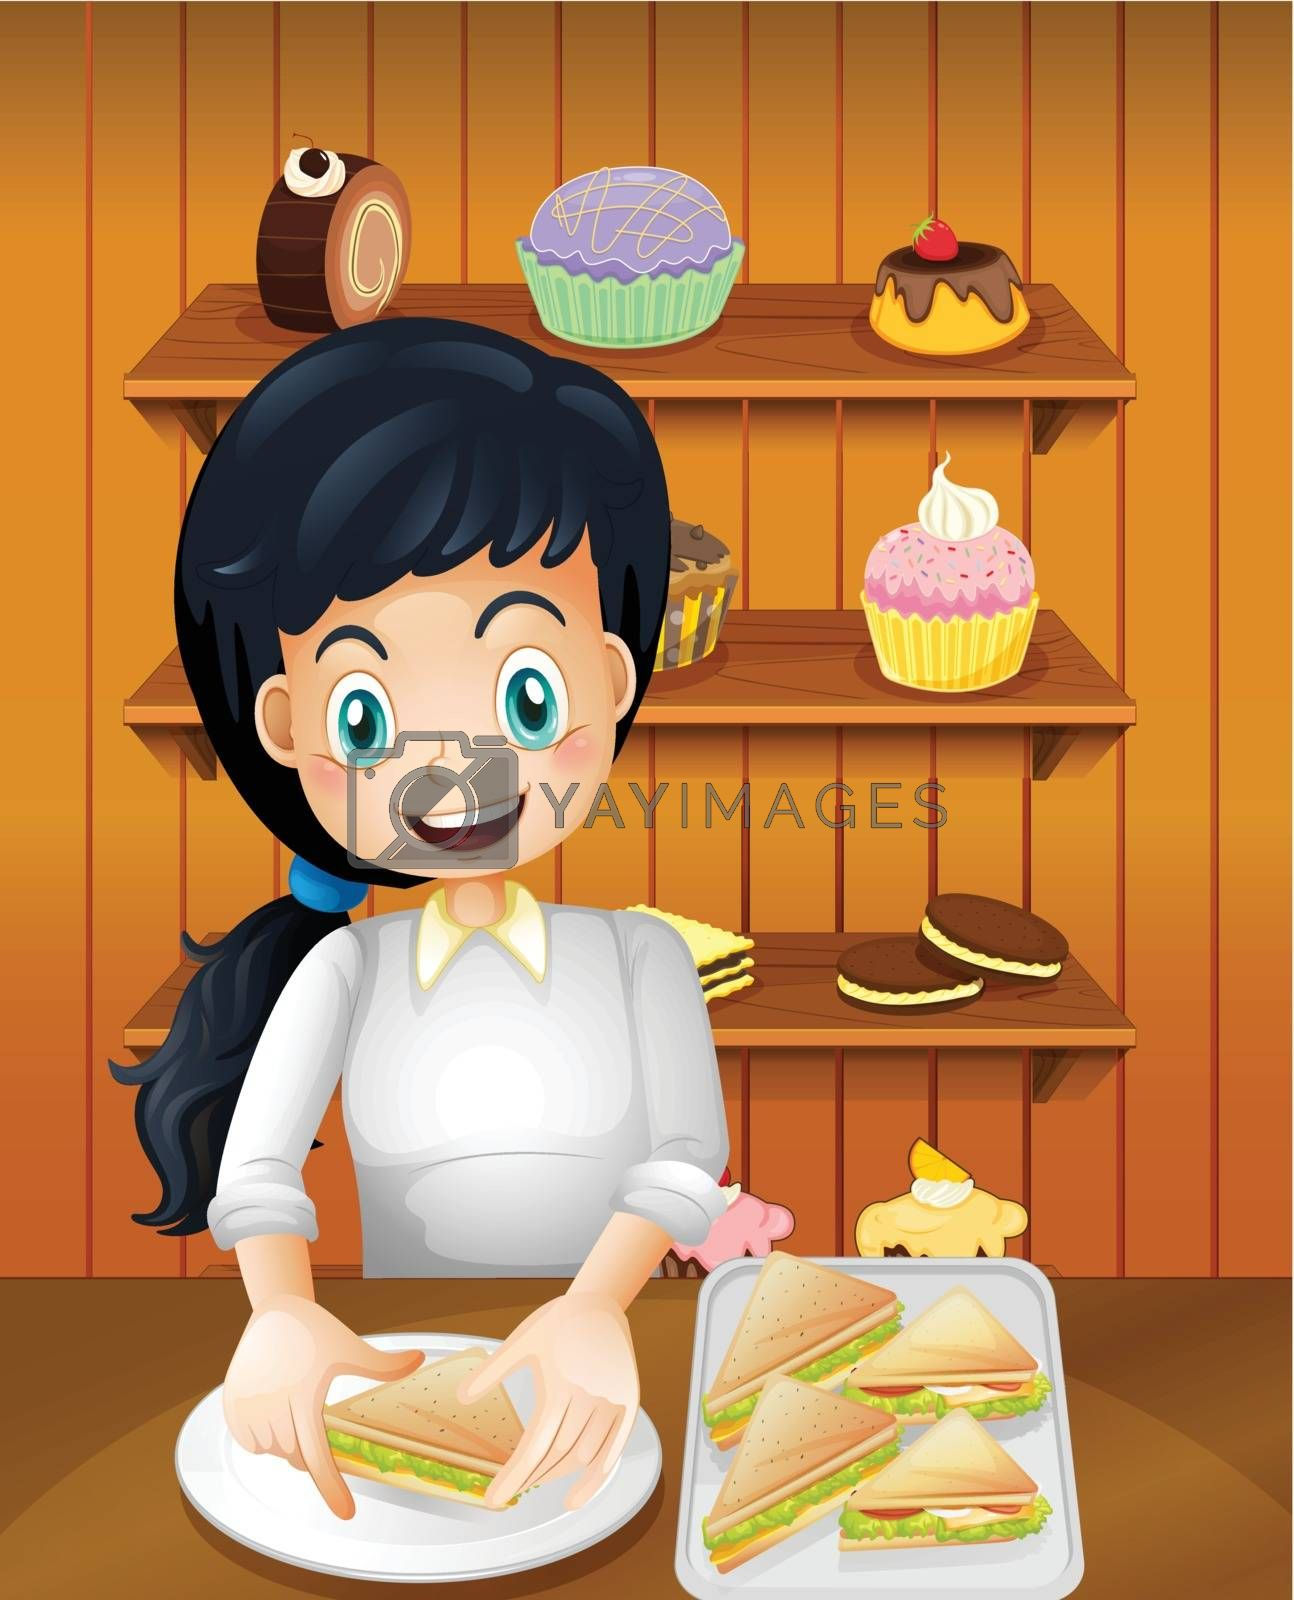 Illustration of a happy mother preparing sandwiches